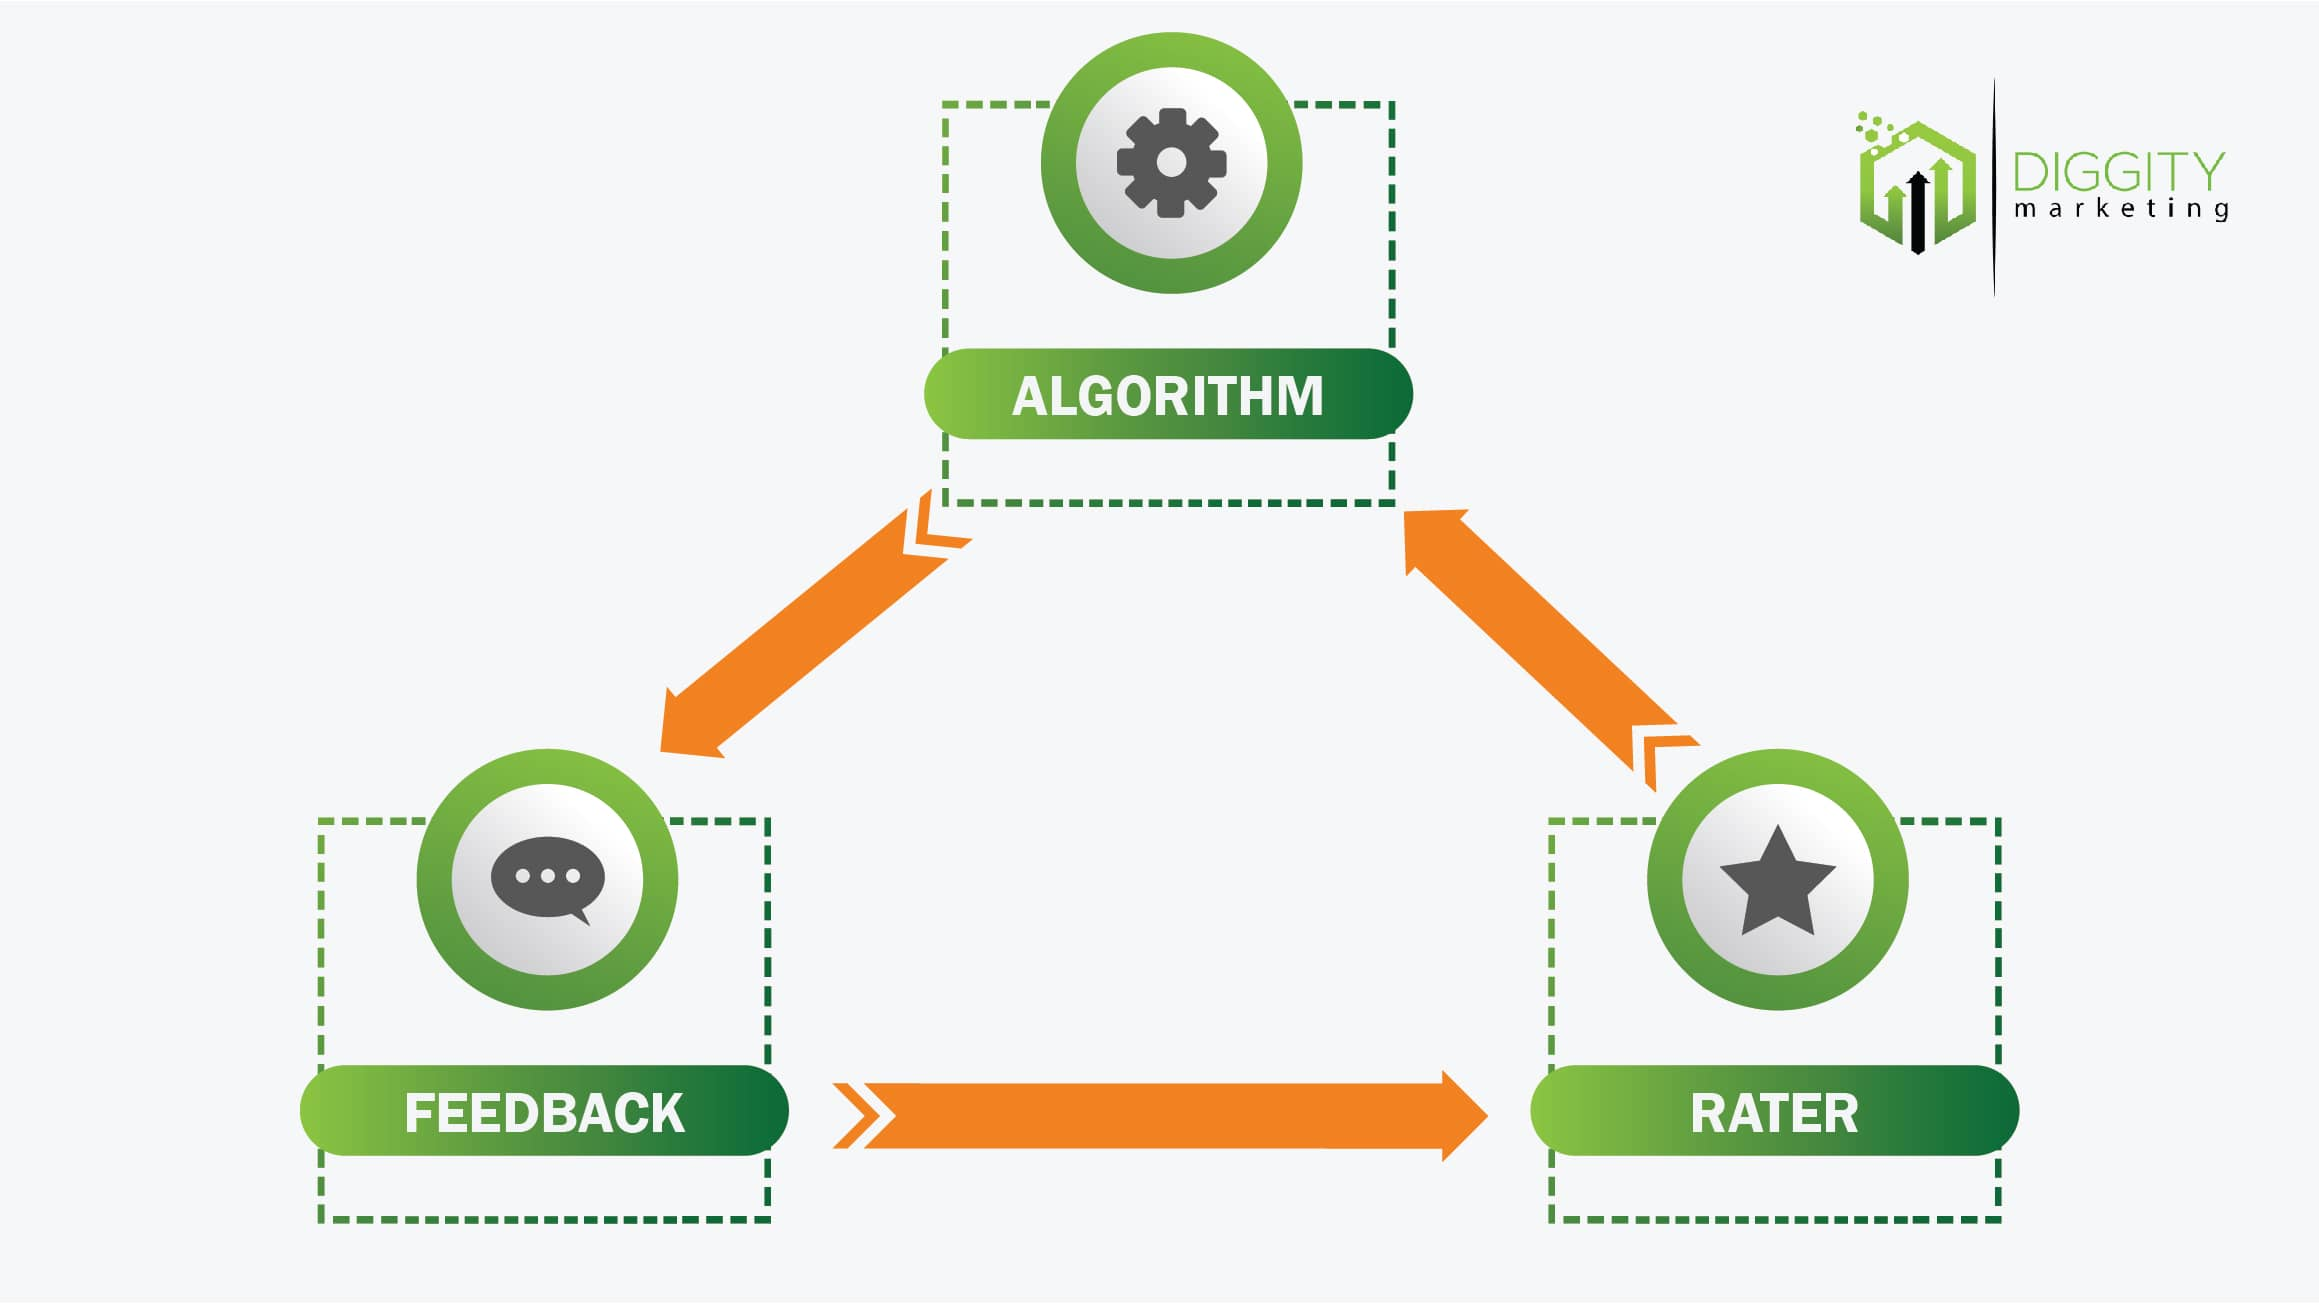 algorithm and raters diagram